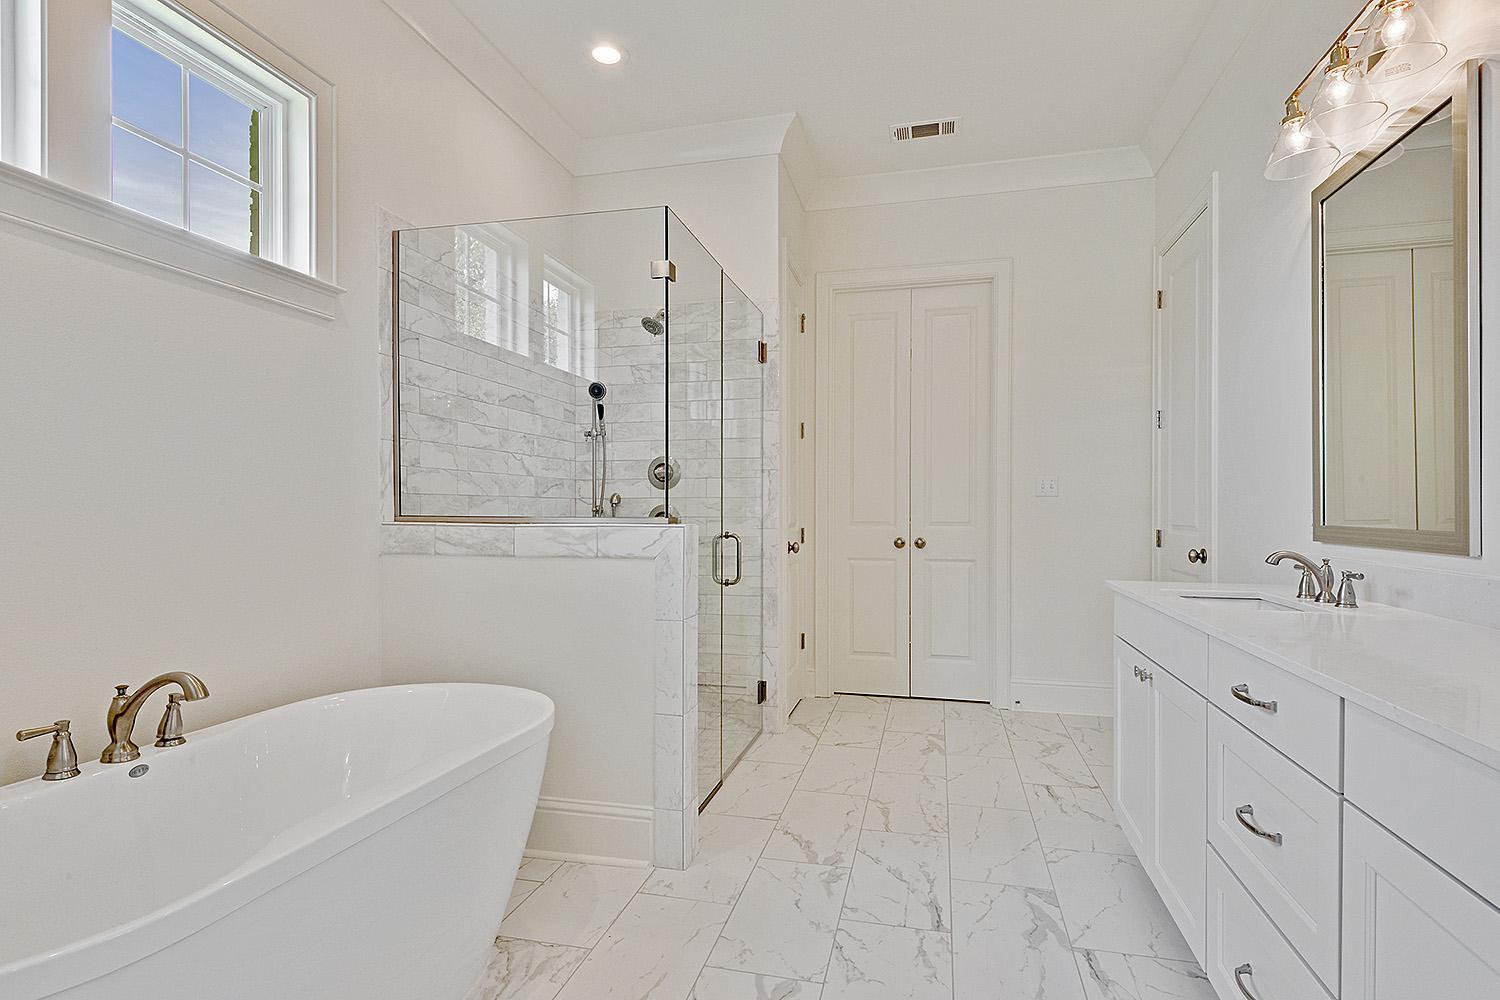 Bathroom featured in the Autumn By Highland Homes in New Orleans, LA